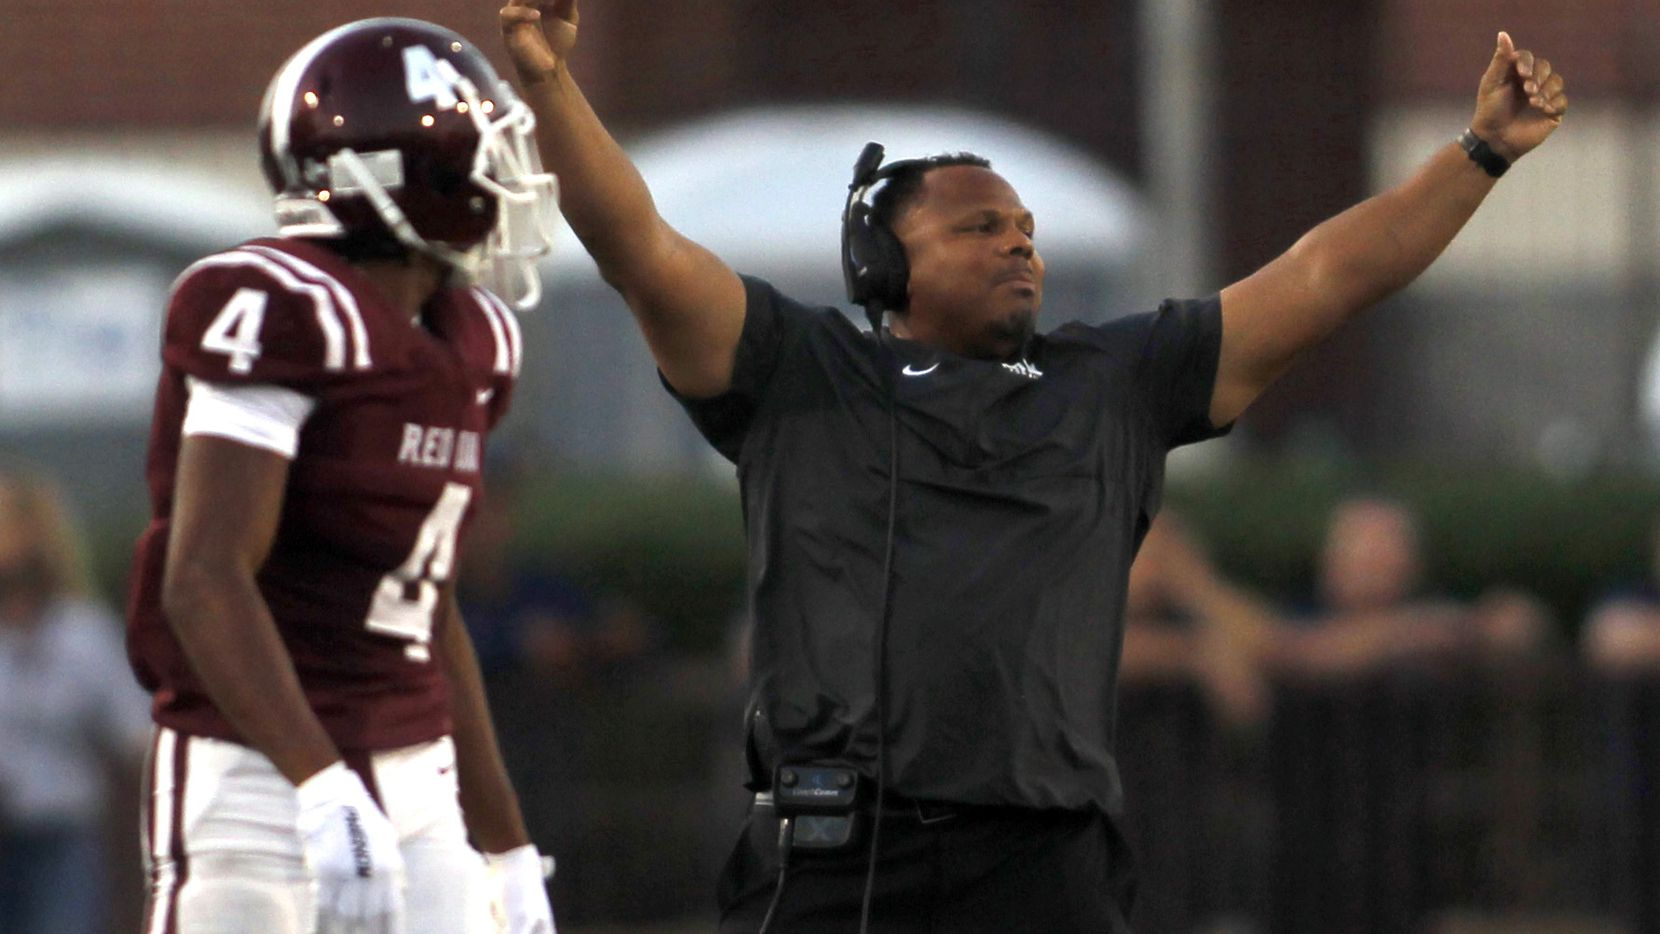 Red Oak head coach Tony Holmes reacts to a defensive stop during first half action against Rockwall Heath. The two teams played their non-district football game at Billy Goodloe Stadium on the campus of Red Oak High School in Red Oak on September 10, 2021. (Steve Hamm/ Special Contributor)